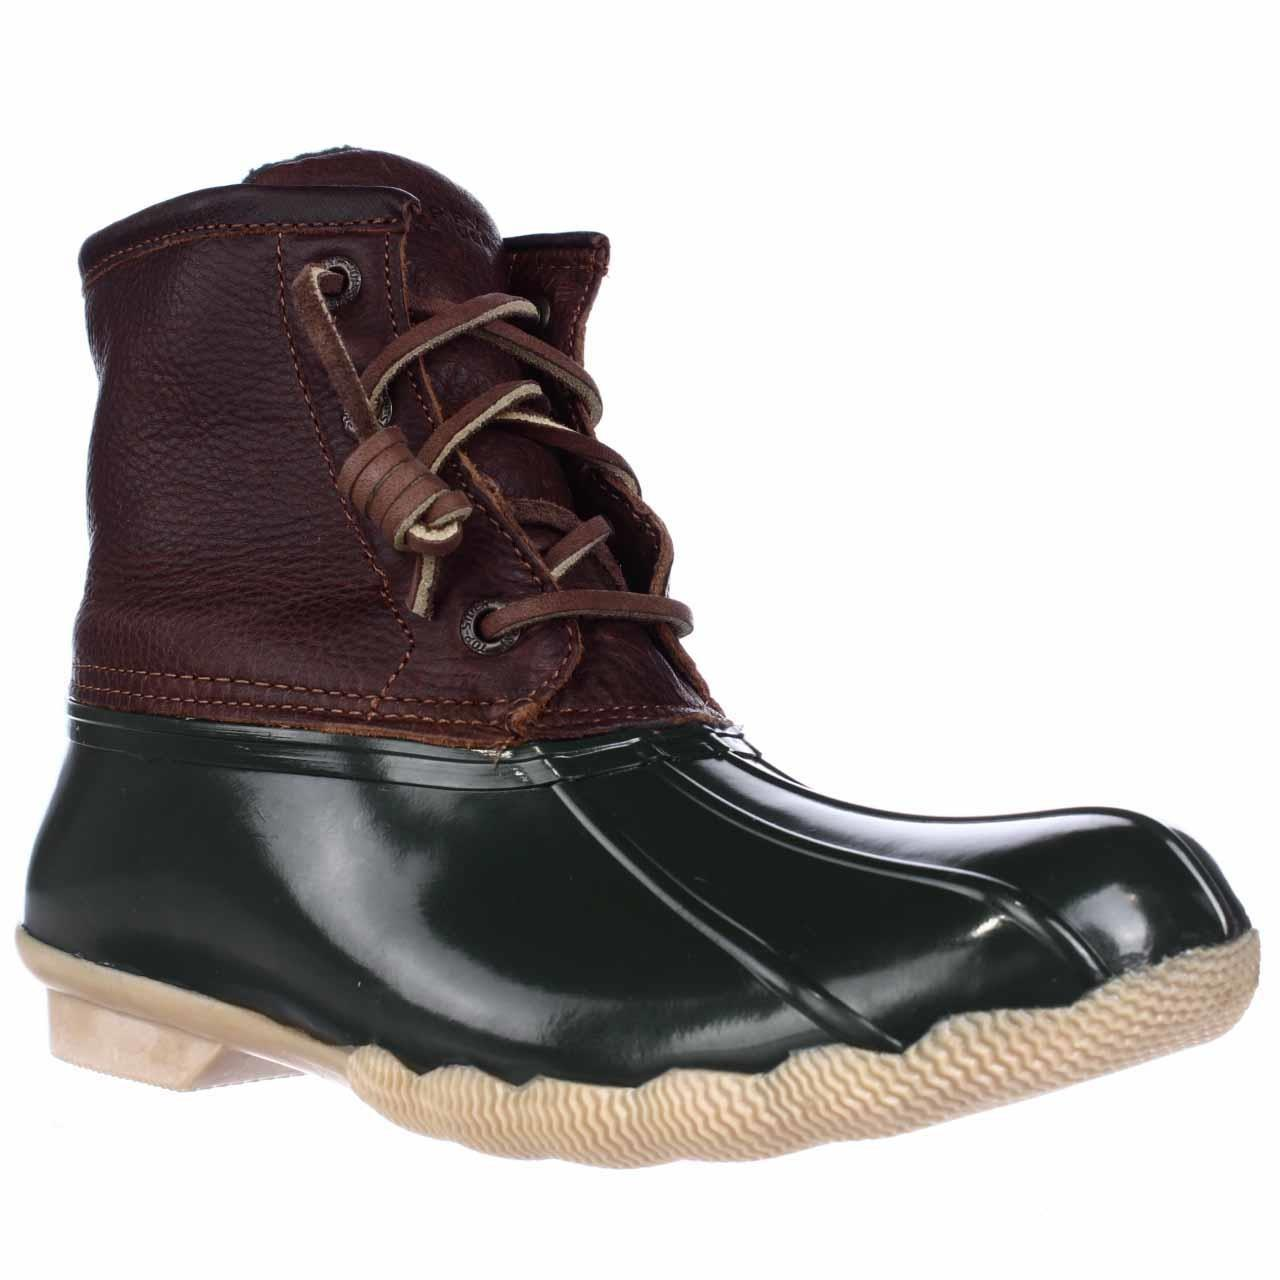 Sperry Top Sider Saltwater Short Rain Boots In Brown Lyst